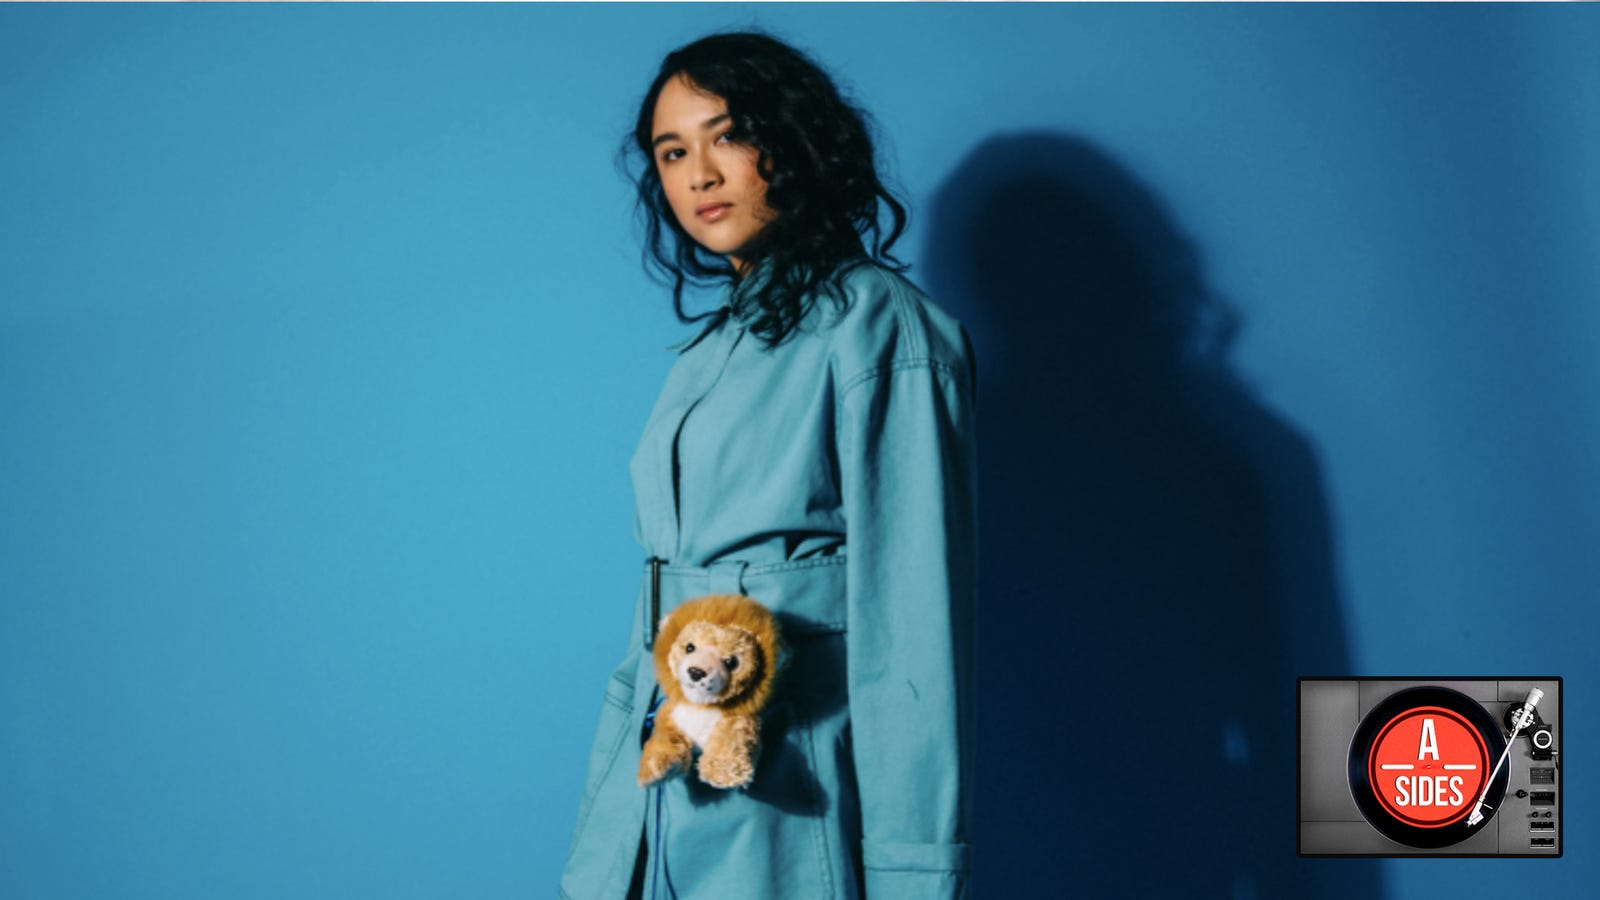 5 new releases we love: Jay Som gets smooth, Missy throws it back, and more